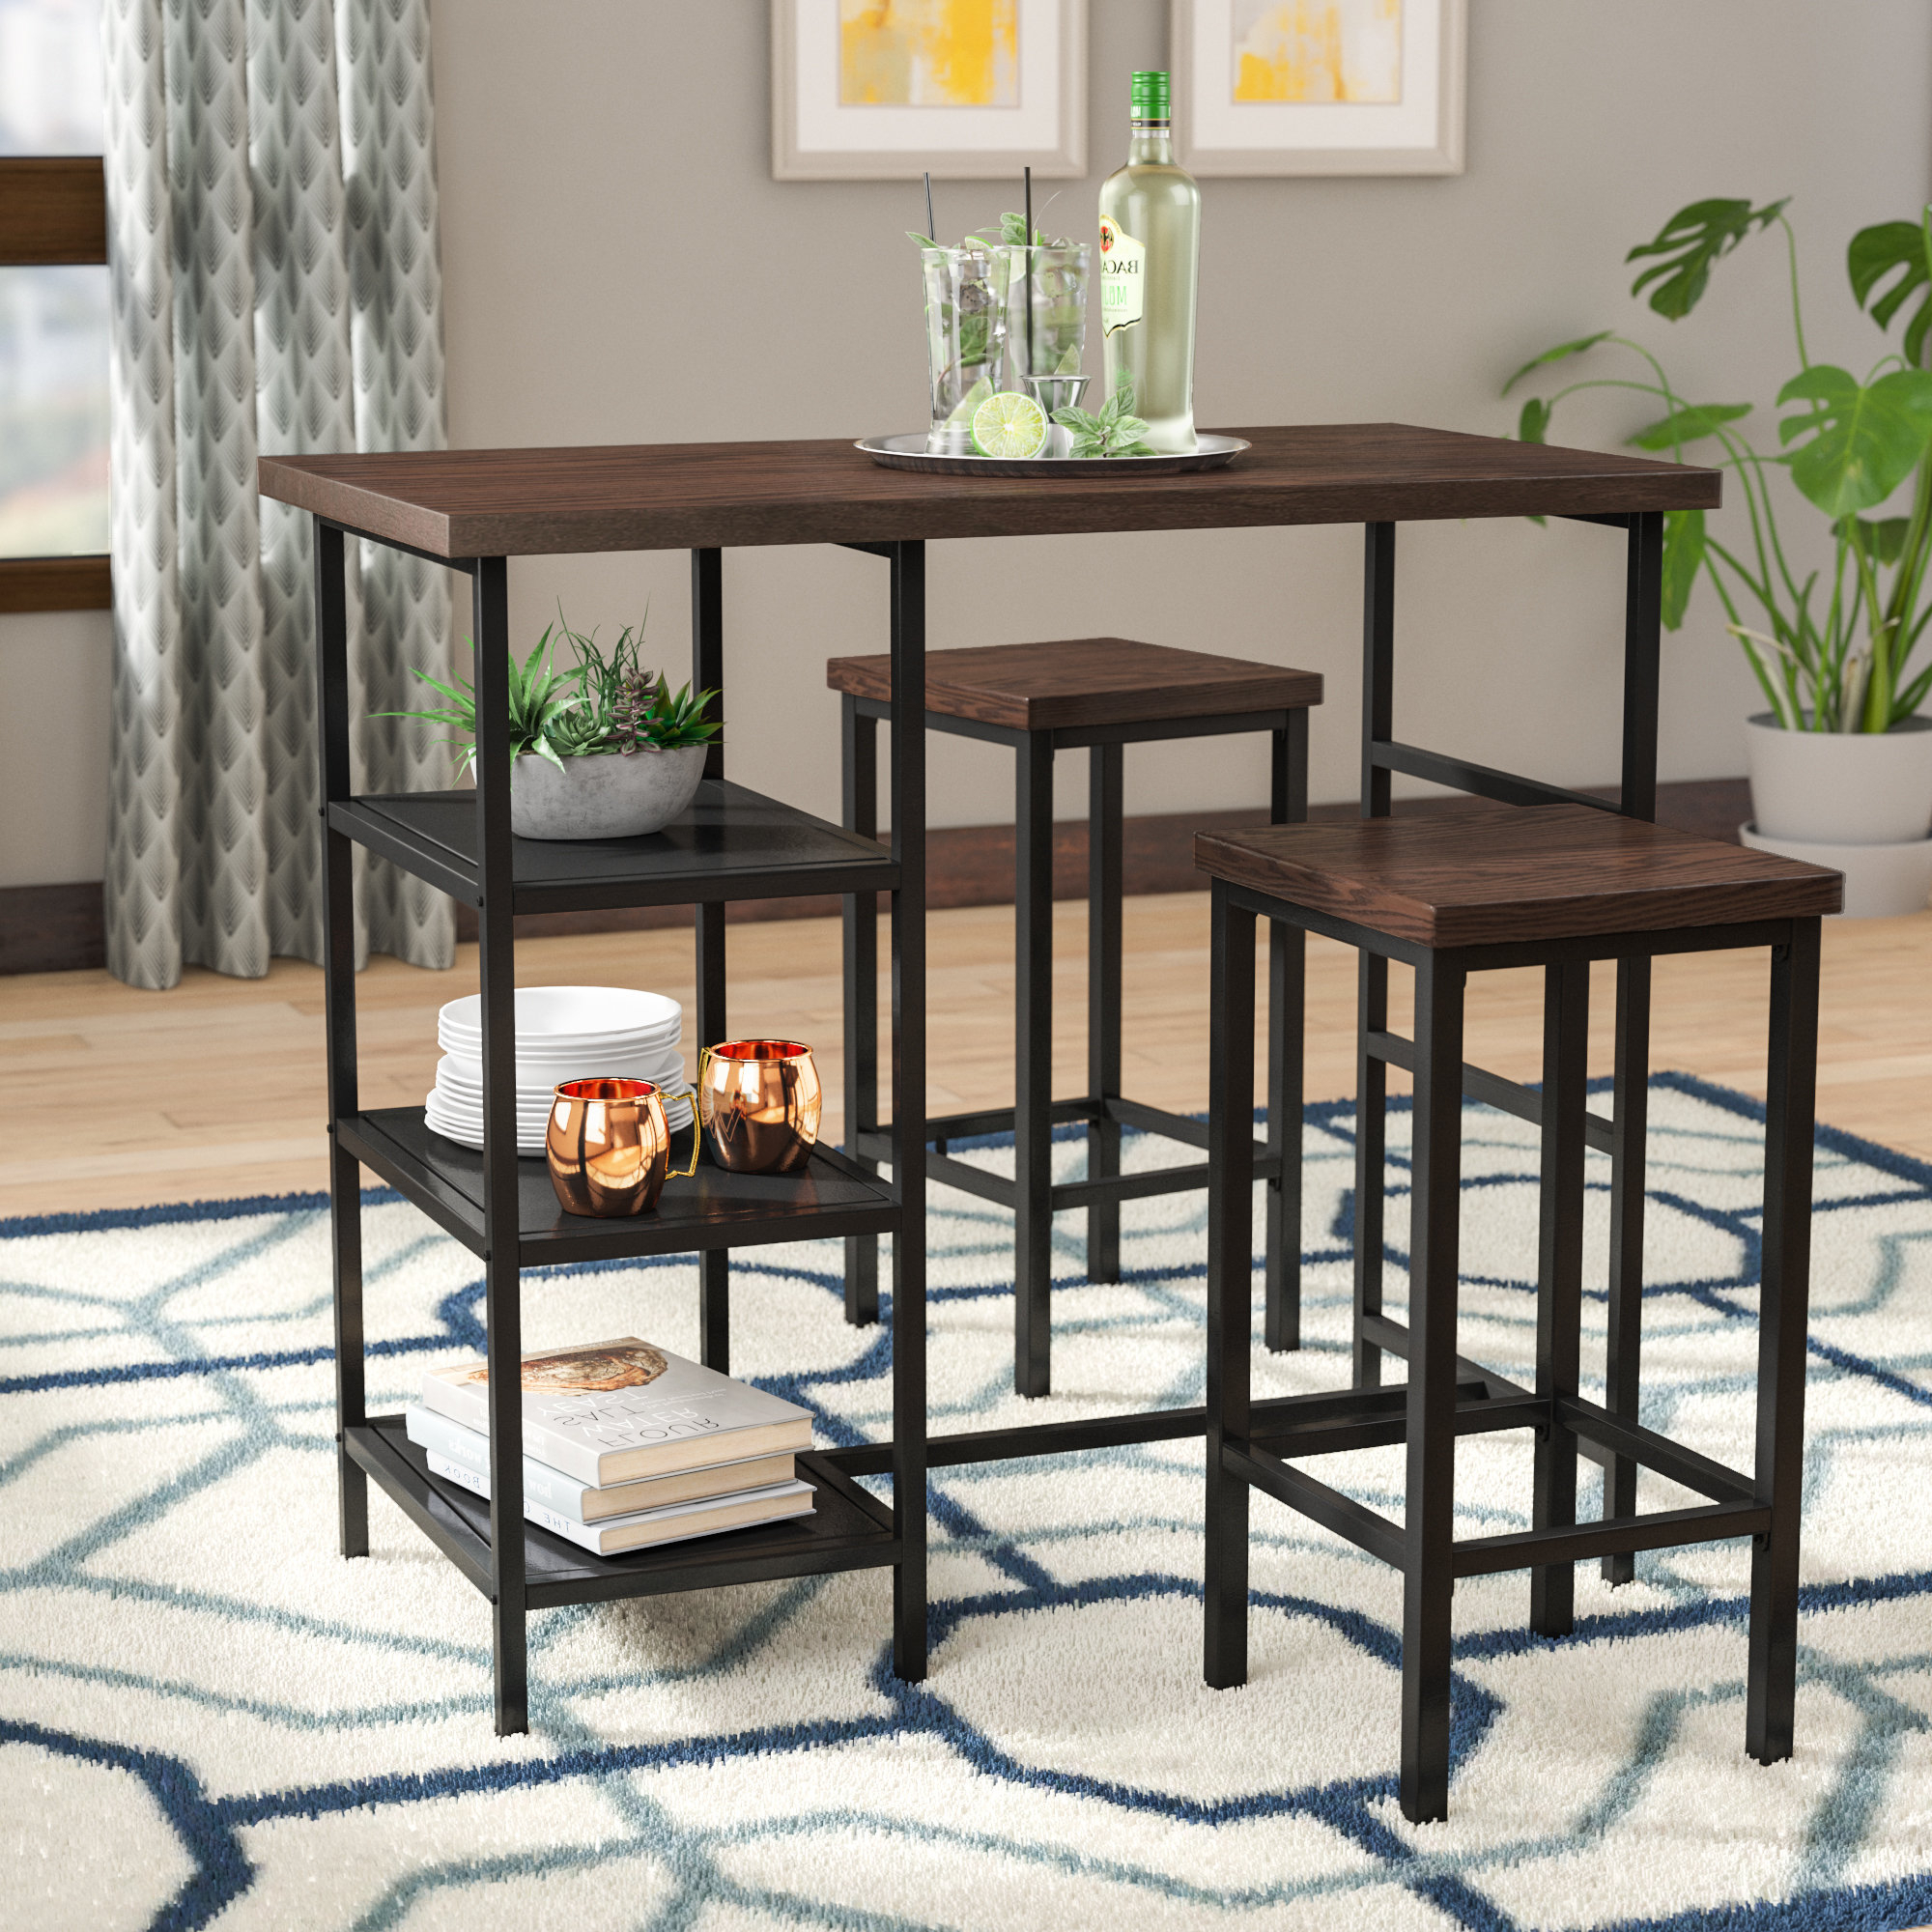 Wayfair Throughout Most Up To Date Frida 3 Piece Dining Table Sets (View 10 of 20)